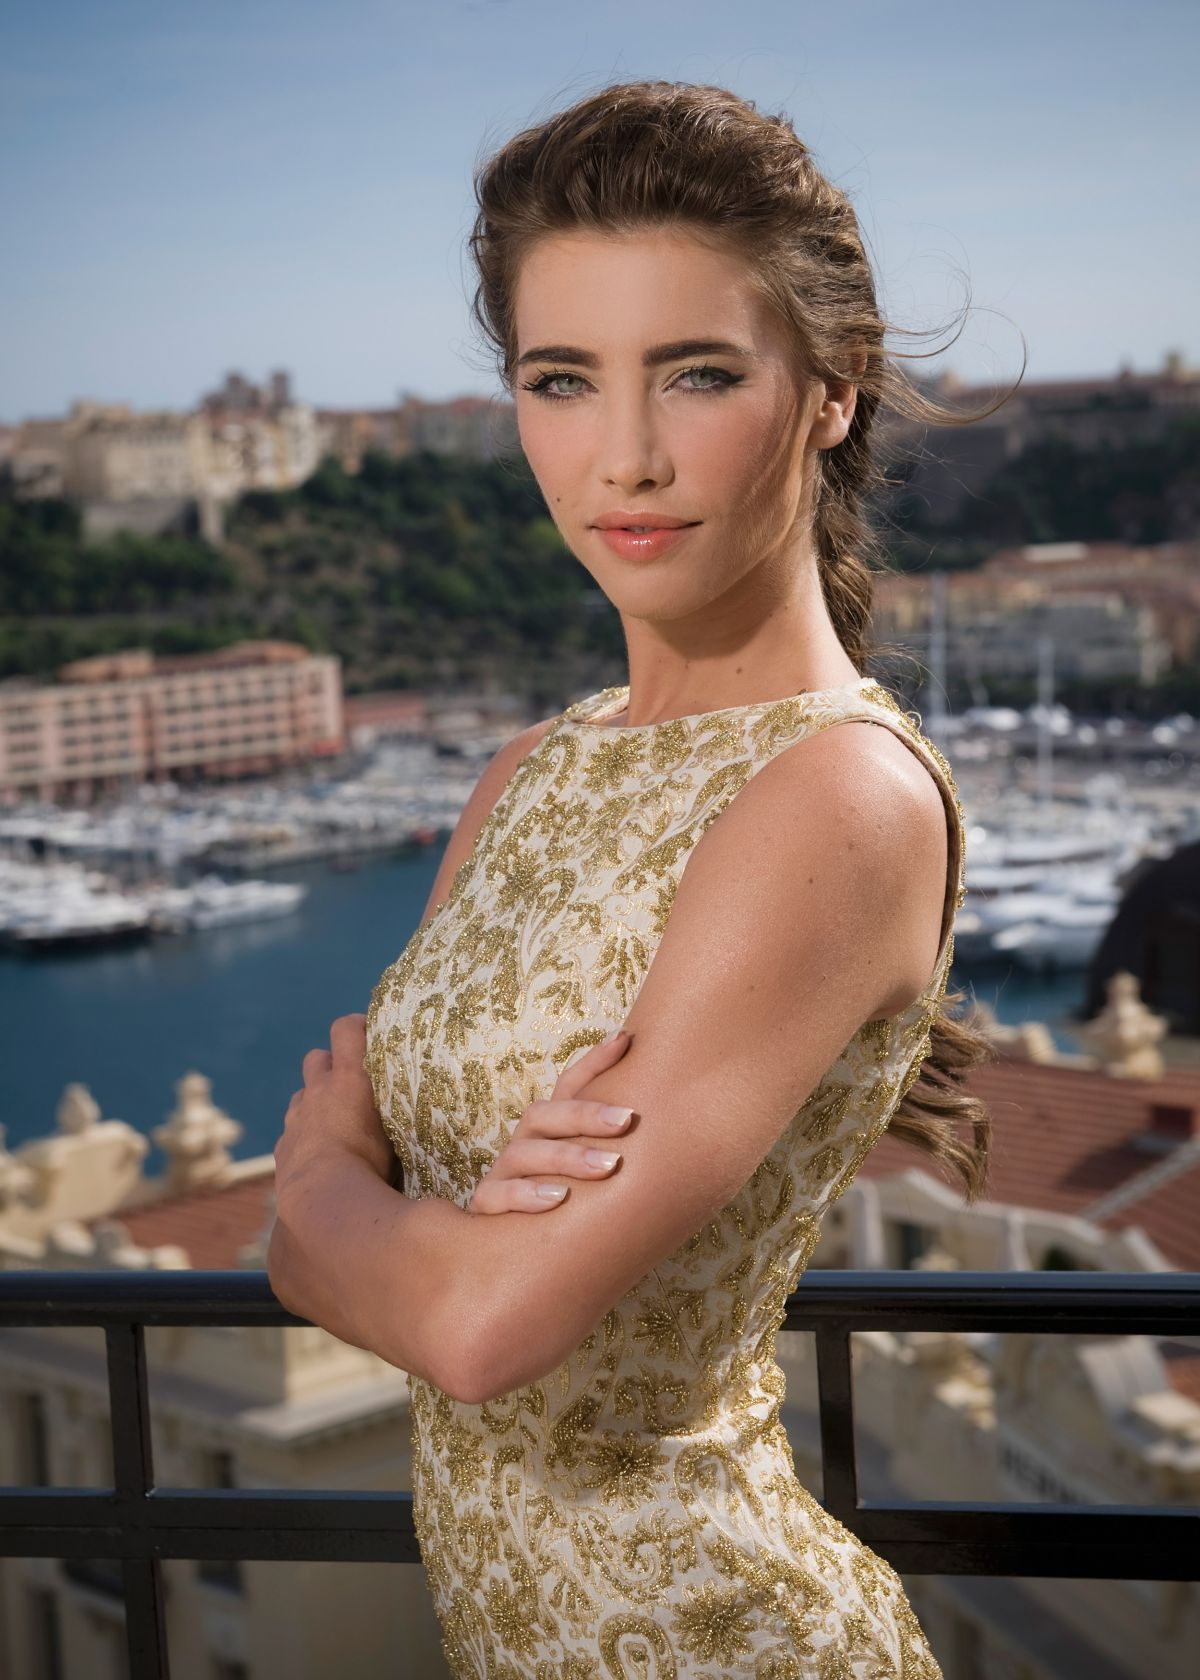 jacqueline macinnes wood twitterjacqueline macinnes wood gif, jacqueline macinnes wood final destination 5, jacqueline macinnes wood forum, jacqueline macinnes wood wallpaper, jacqueline macinnes wood after hours, jacqueline macinnes wood leather, jacqueline macinnes wood instagram, jacqueline macinnes wood boyfriend, jacqueline macinnes wood photo, jacqueline macinnes wood, jacqueline macinnes wood arrow, jacqueline macinnes wood facebook, jacqueline macinnes wood and daren kagasoff, jacqueline macinnes wood imdb, jacqueline macinnes wood married, jacqueline macinnes wood plastic surgery, jacqueline macinnes wood net worth, jacqueline macinnes wood twitter, jacqueline macinnes wood rifatta, jacqueline macinnes wood 2015